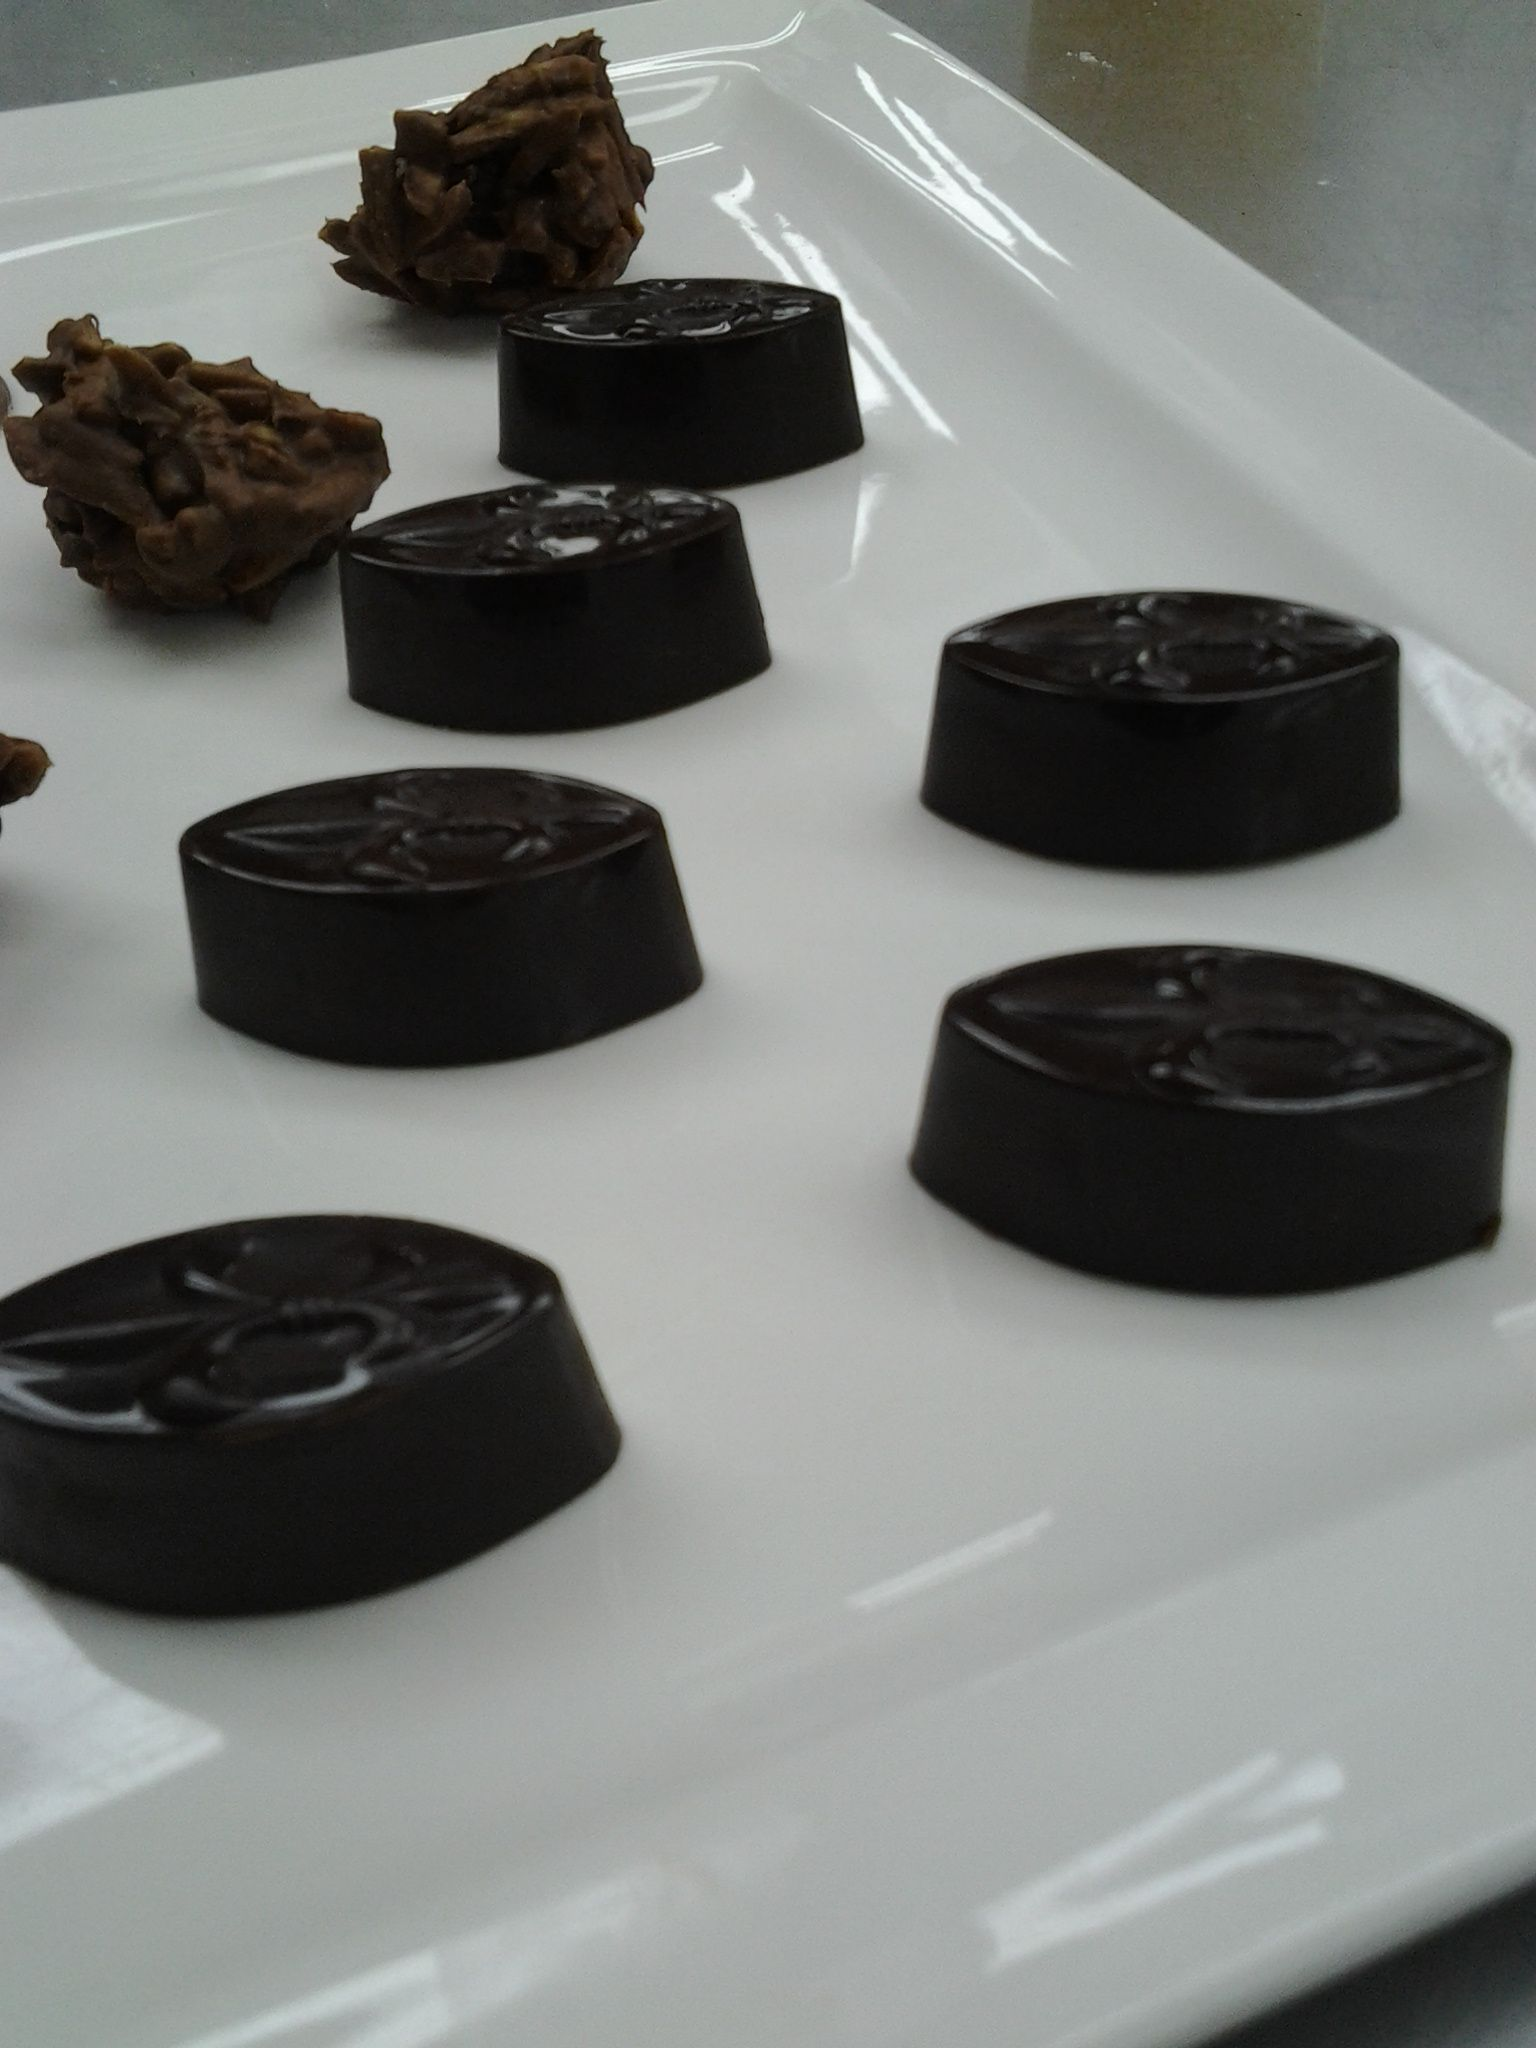 We use Fleur-de-lys molder for our dark chocolates pralines and filled with coffee ganache so seem like mocha pralines. this is one best creation we made